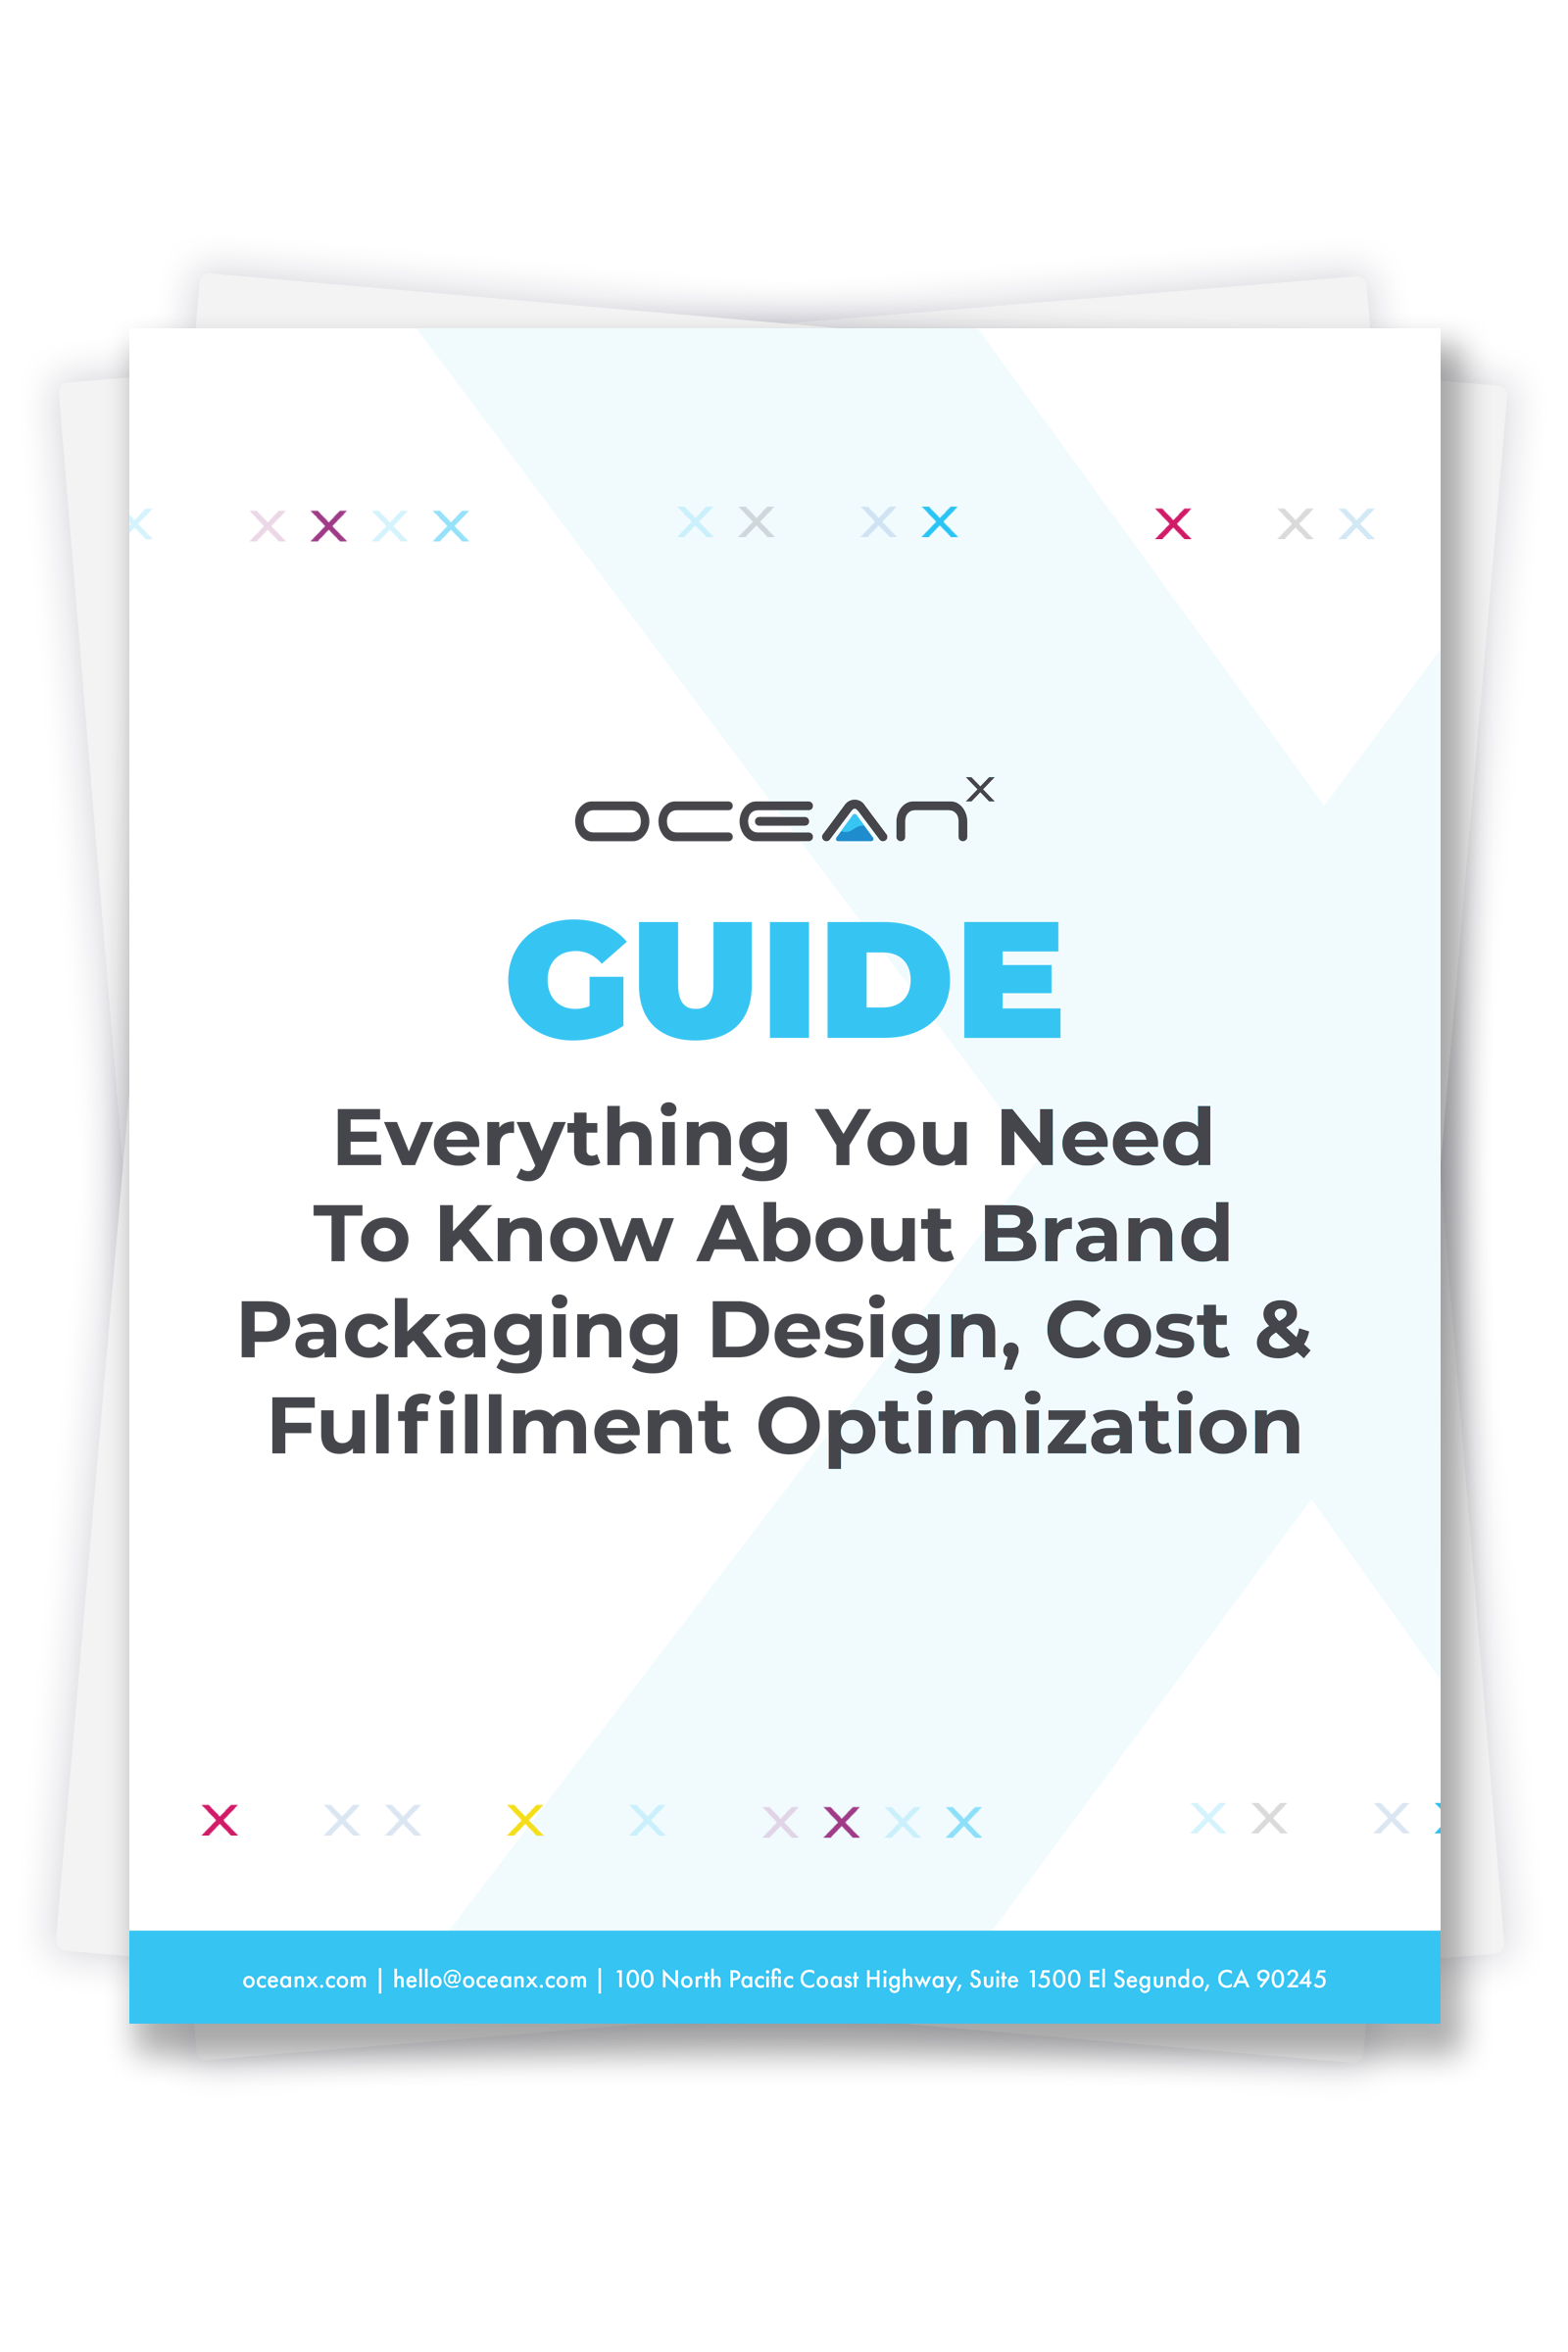 Cover Image:Everything You Need To Know About Brand Packaging Design, Cost & Fulfillment Optimization